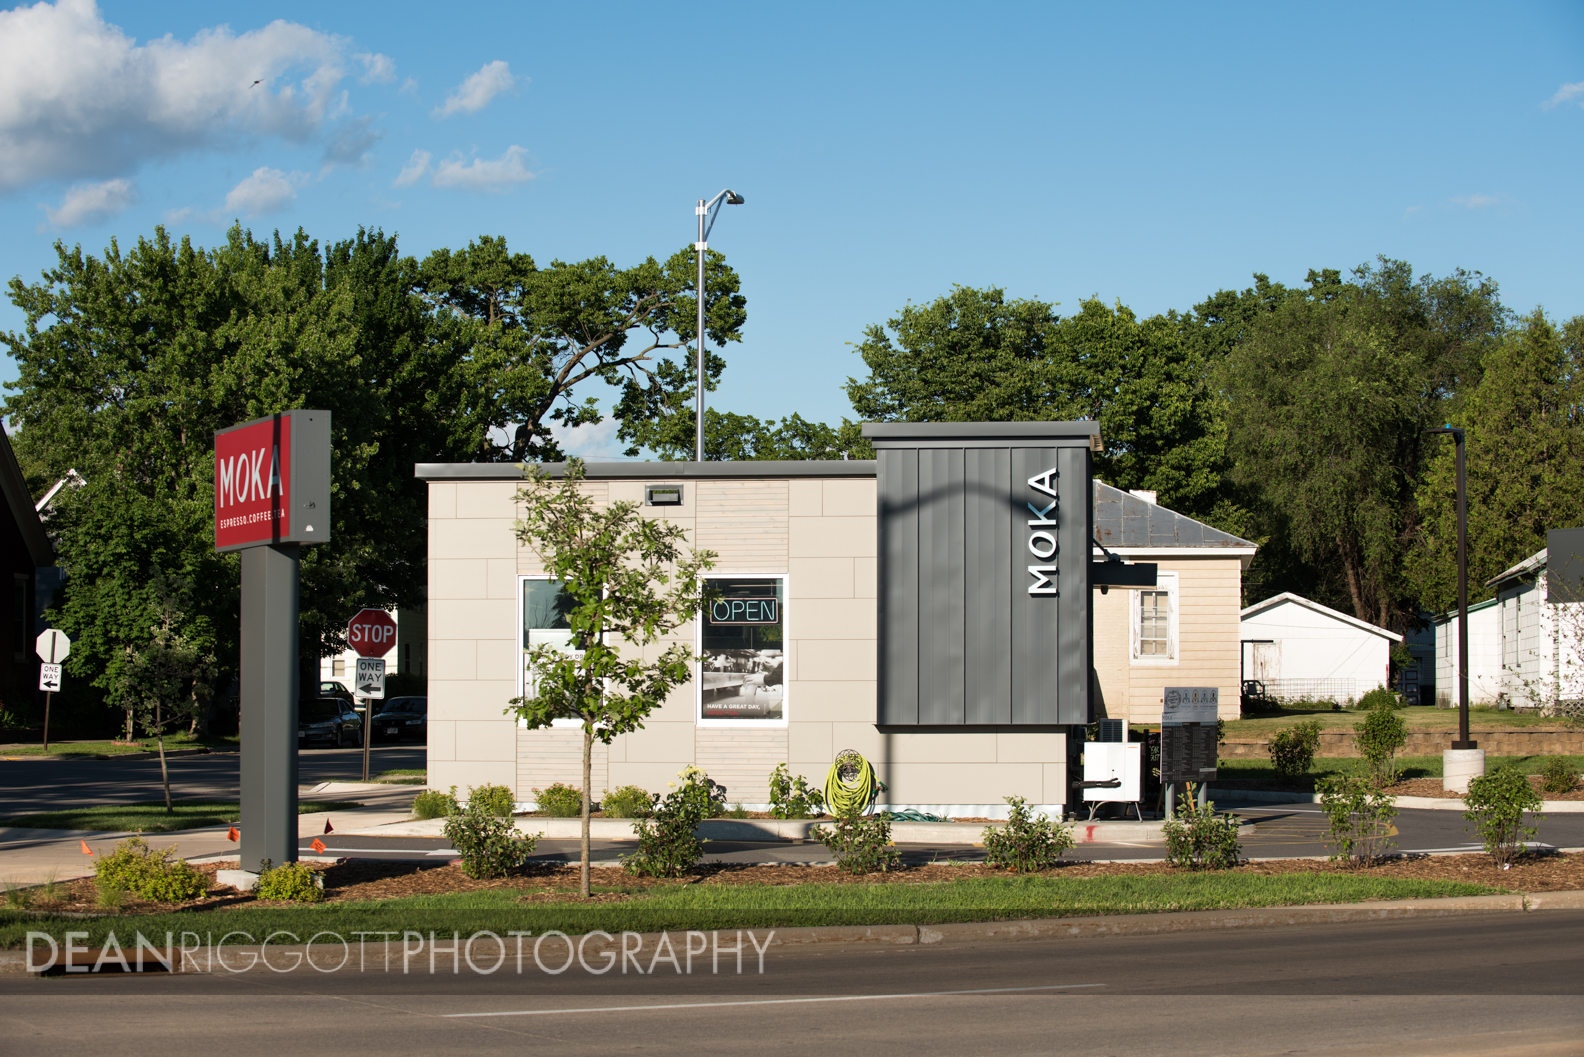 Architectural photography of Moka Java in LaCrosse, Wisconsin.